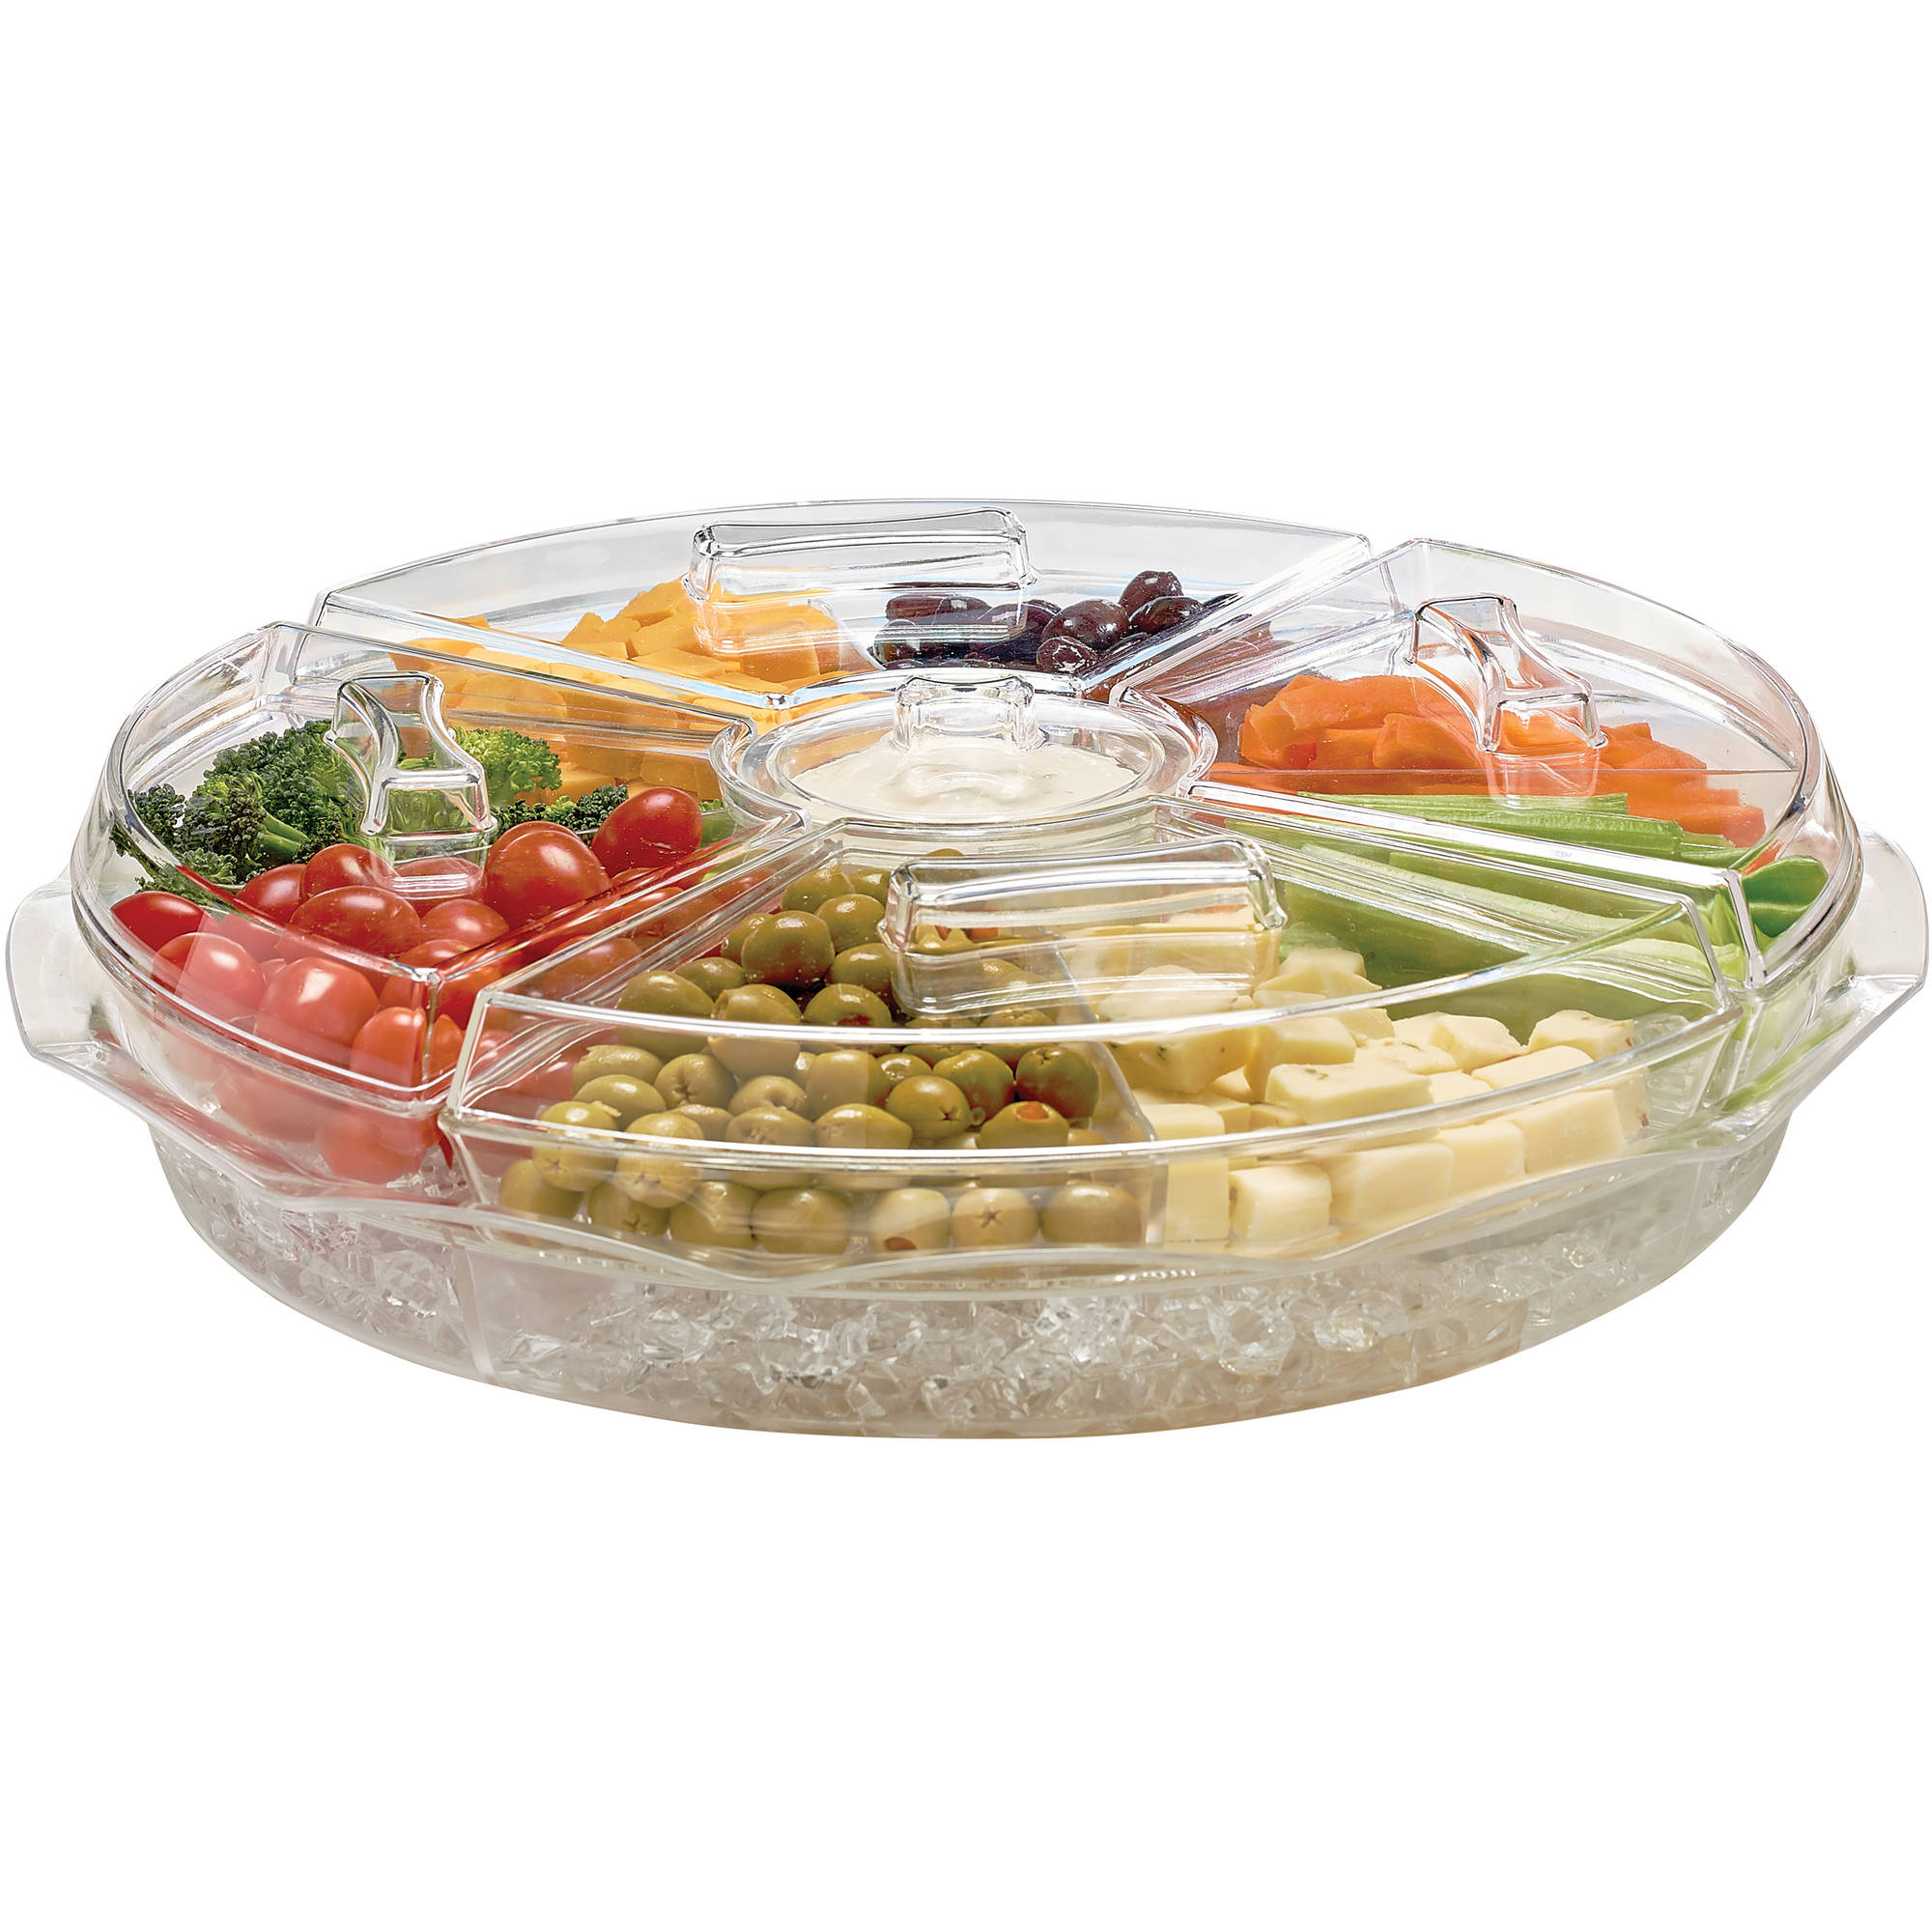 Kitchen Details 8-Section Ice Chilled Appetizer Platter Tray - Walmart.com